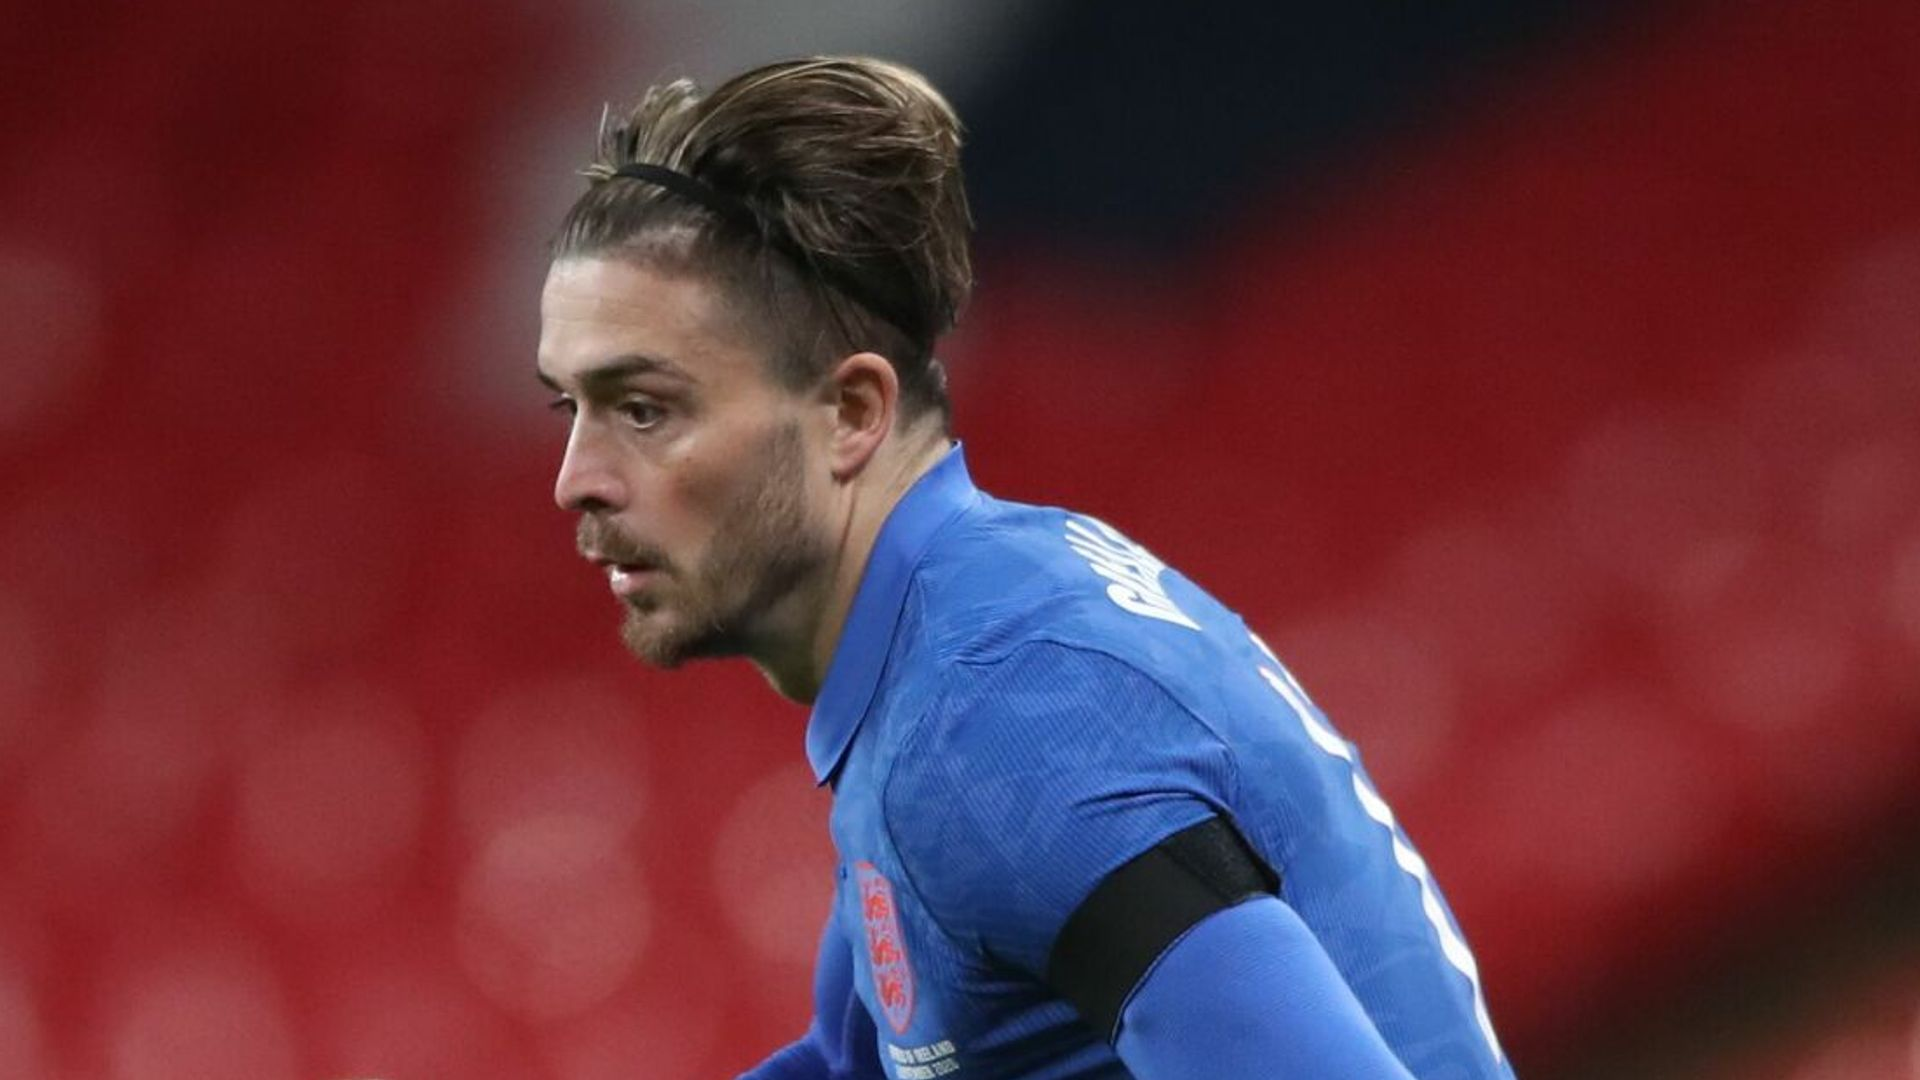 Grealish to make first competitive England start